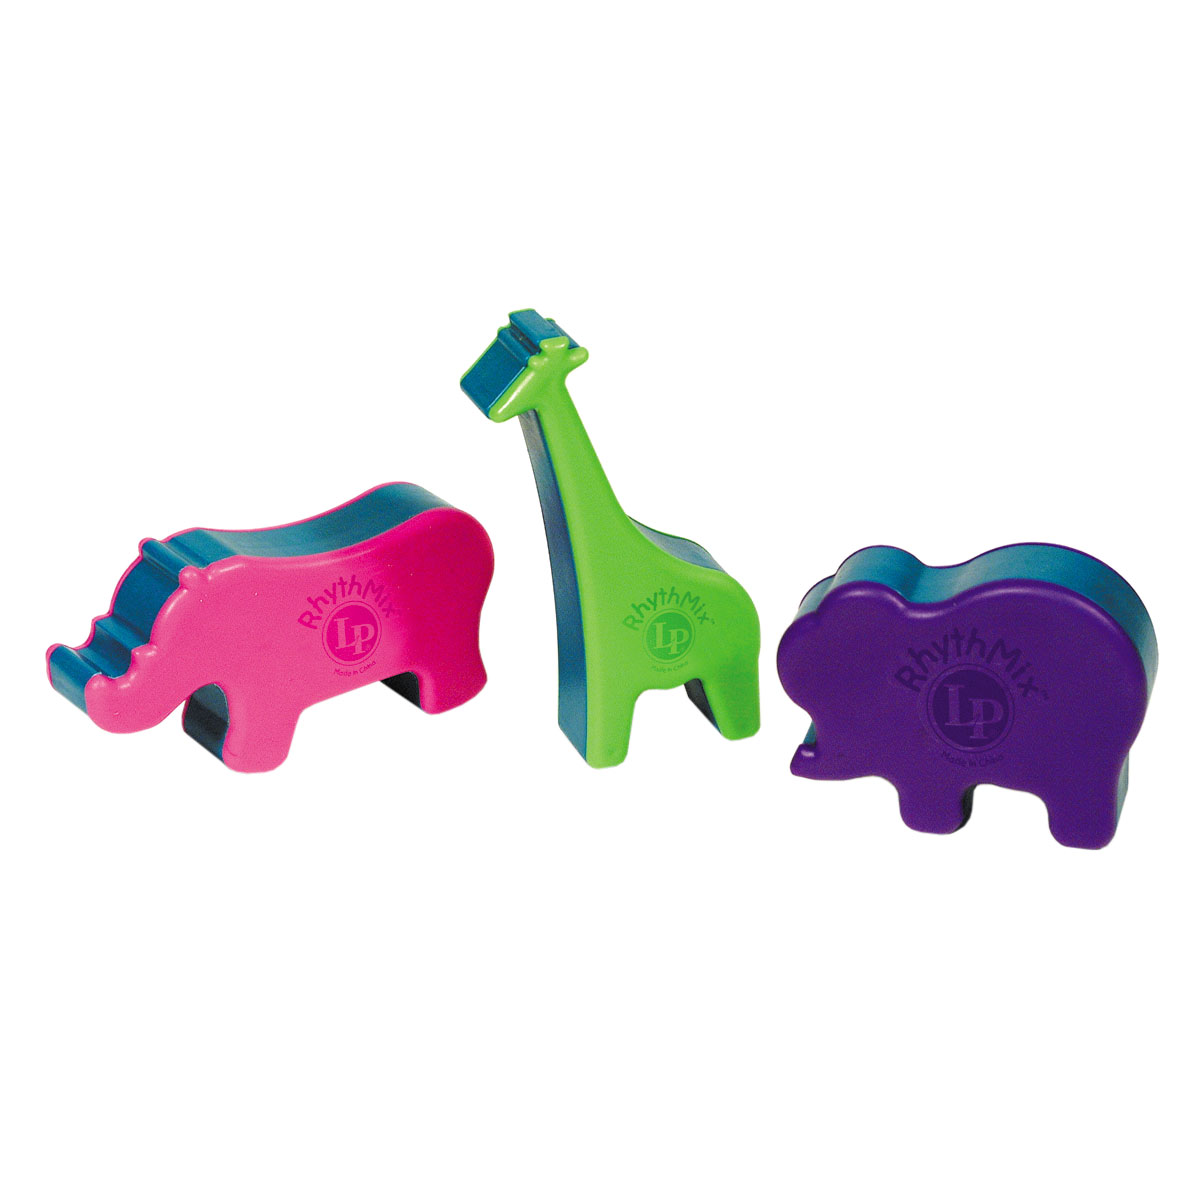 LP Plastic Animal Shakers, Set Of 3